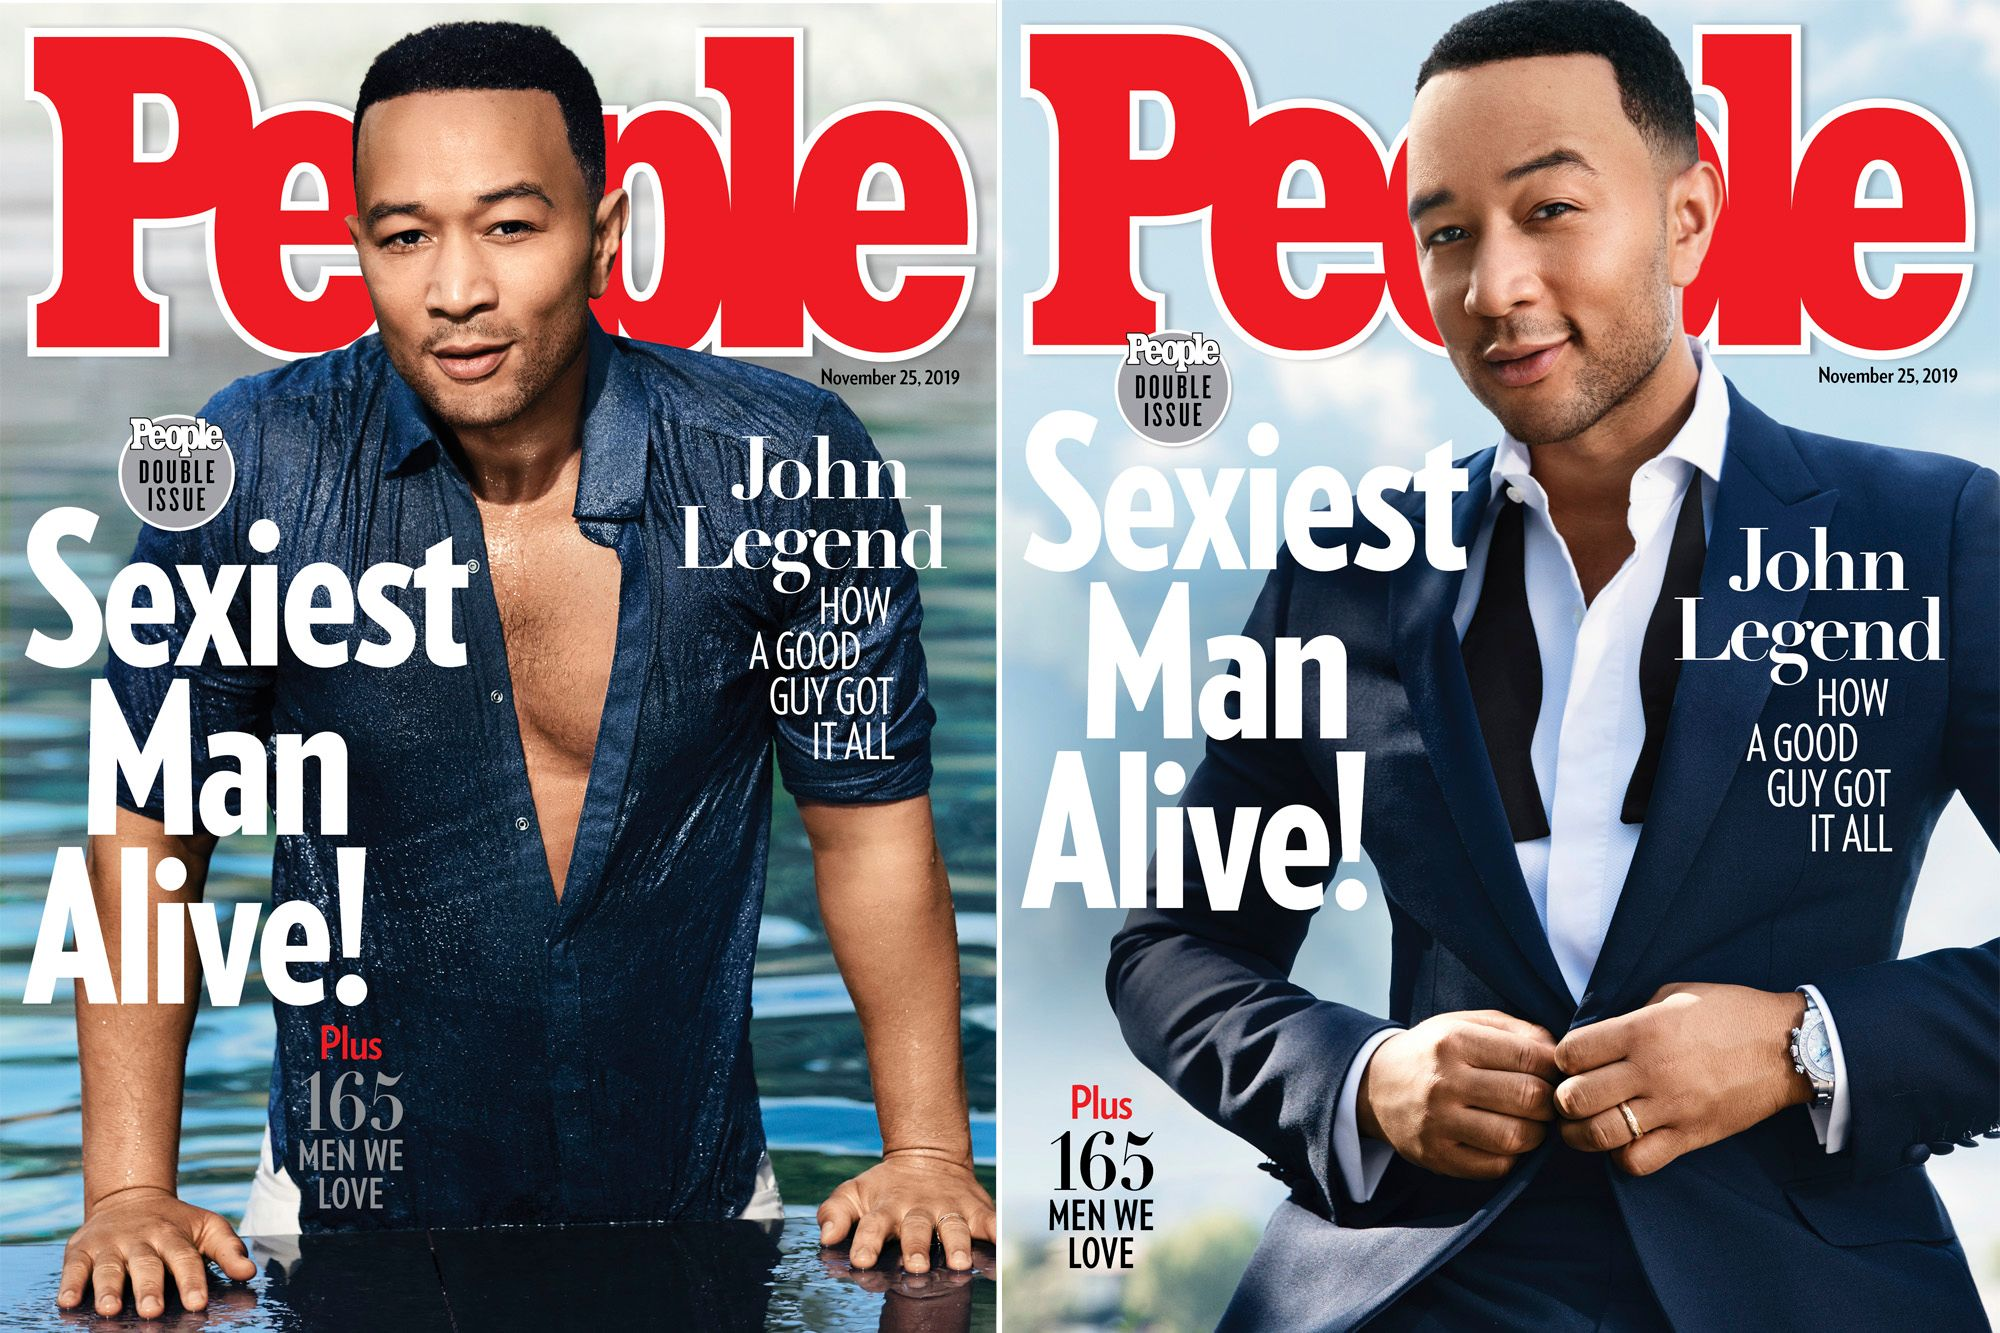 John Legend Is PEOPLE's Sexiest Man Alive 2019: